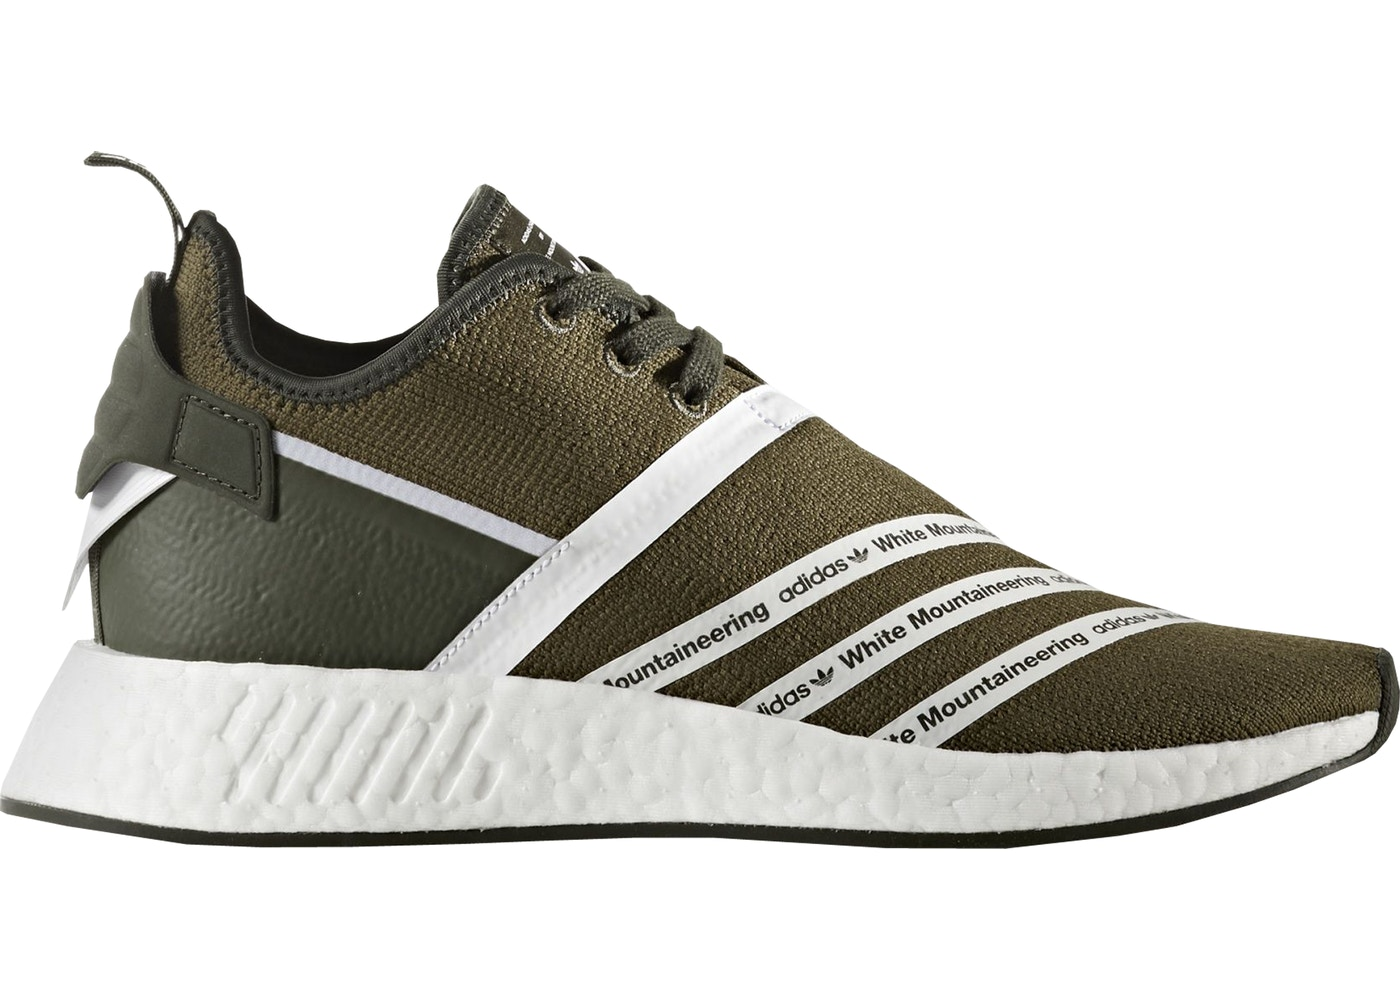 0399b93f9 adidas NMD R2 Shoes - Release Date